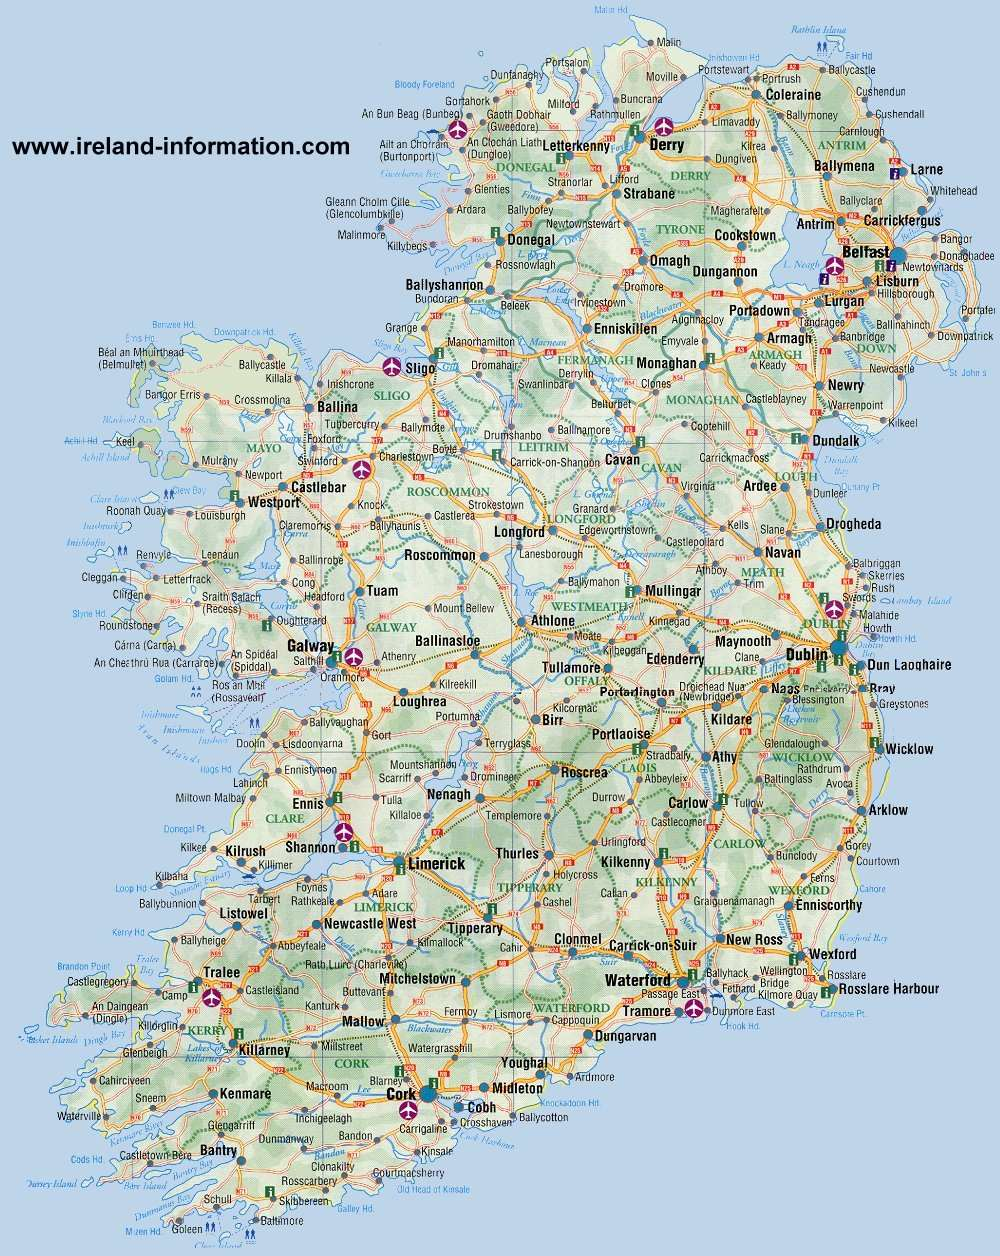 Most Popular Tourist Attractions in Ireland Free & Paid Attractions